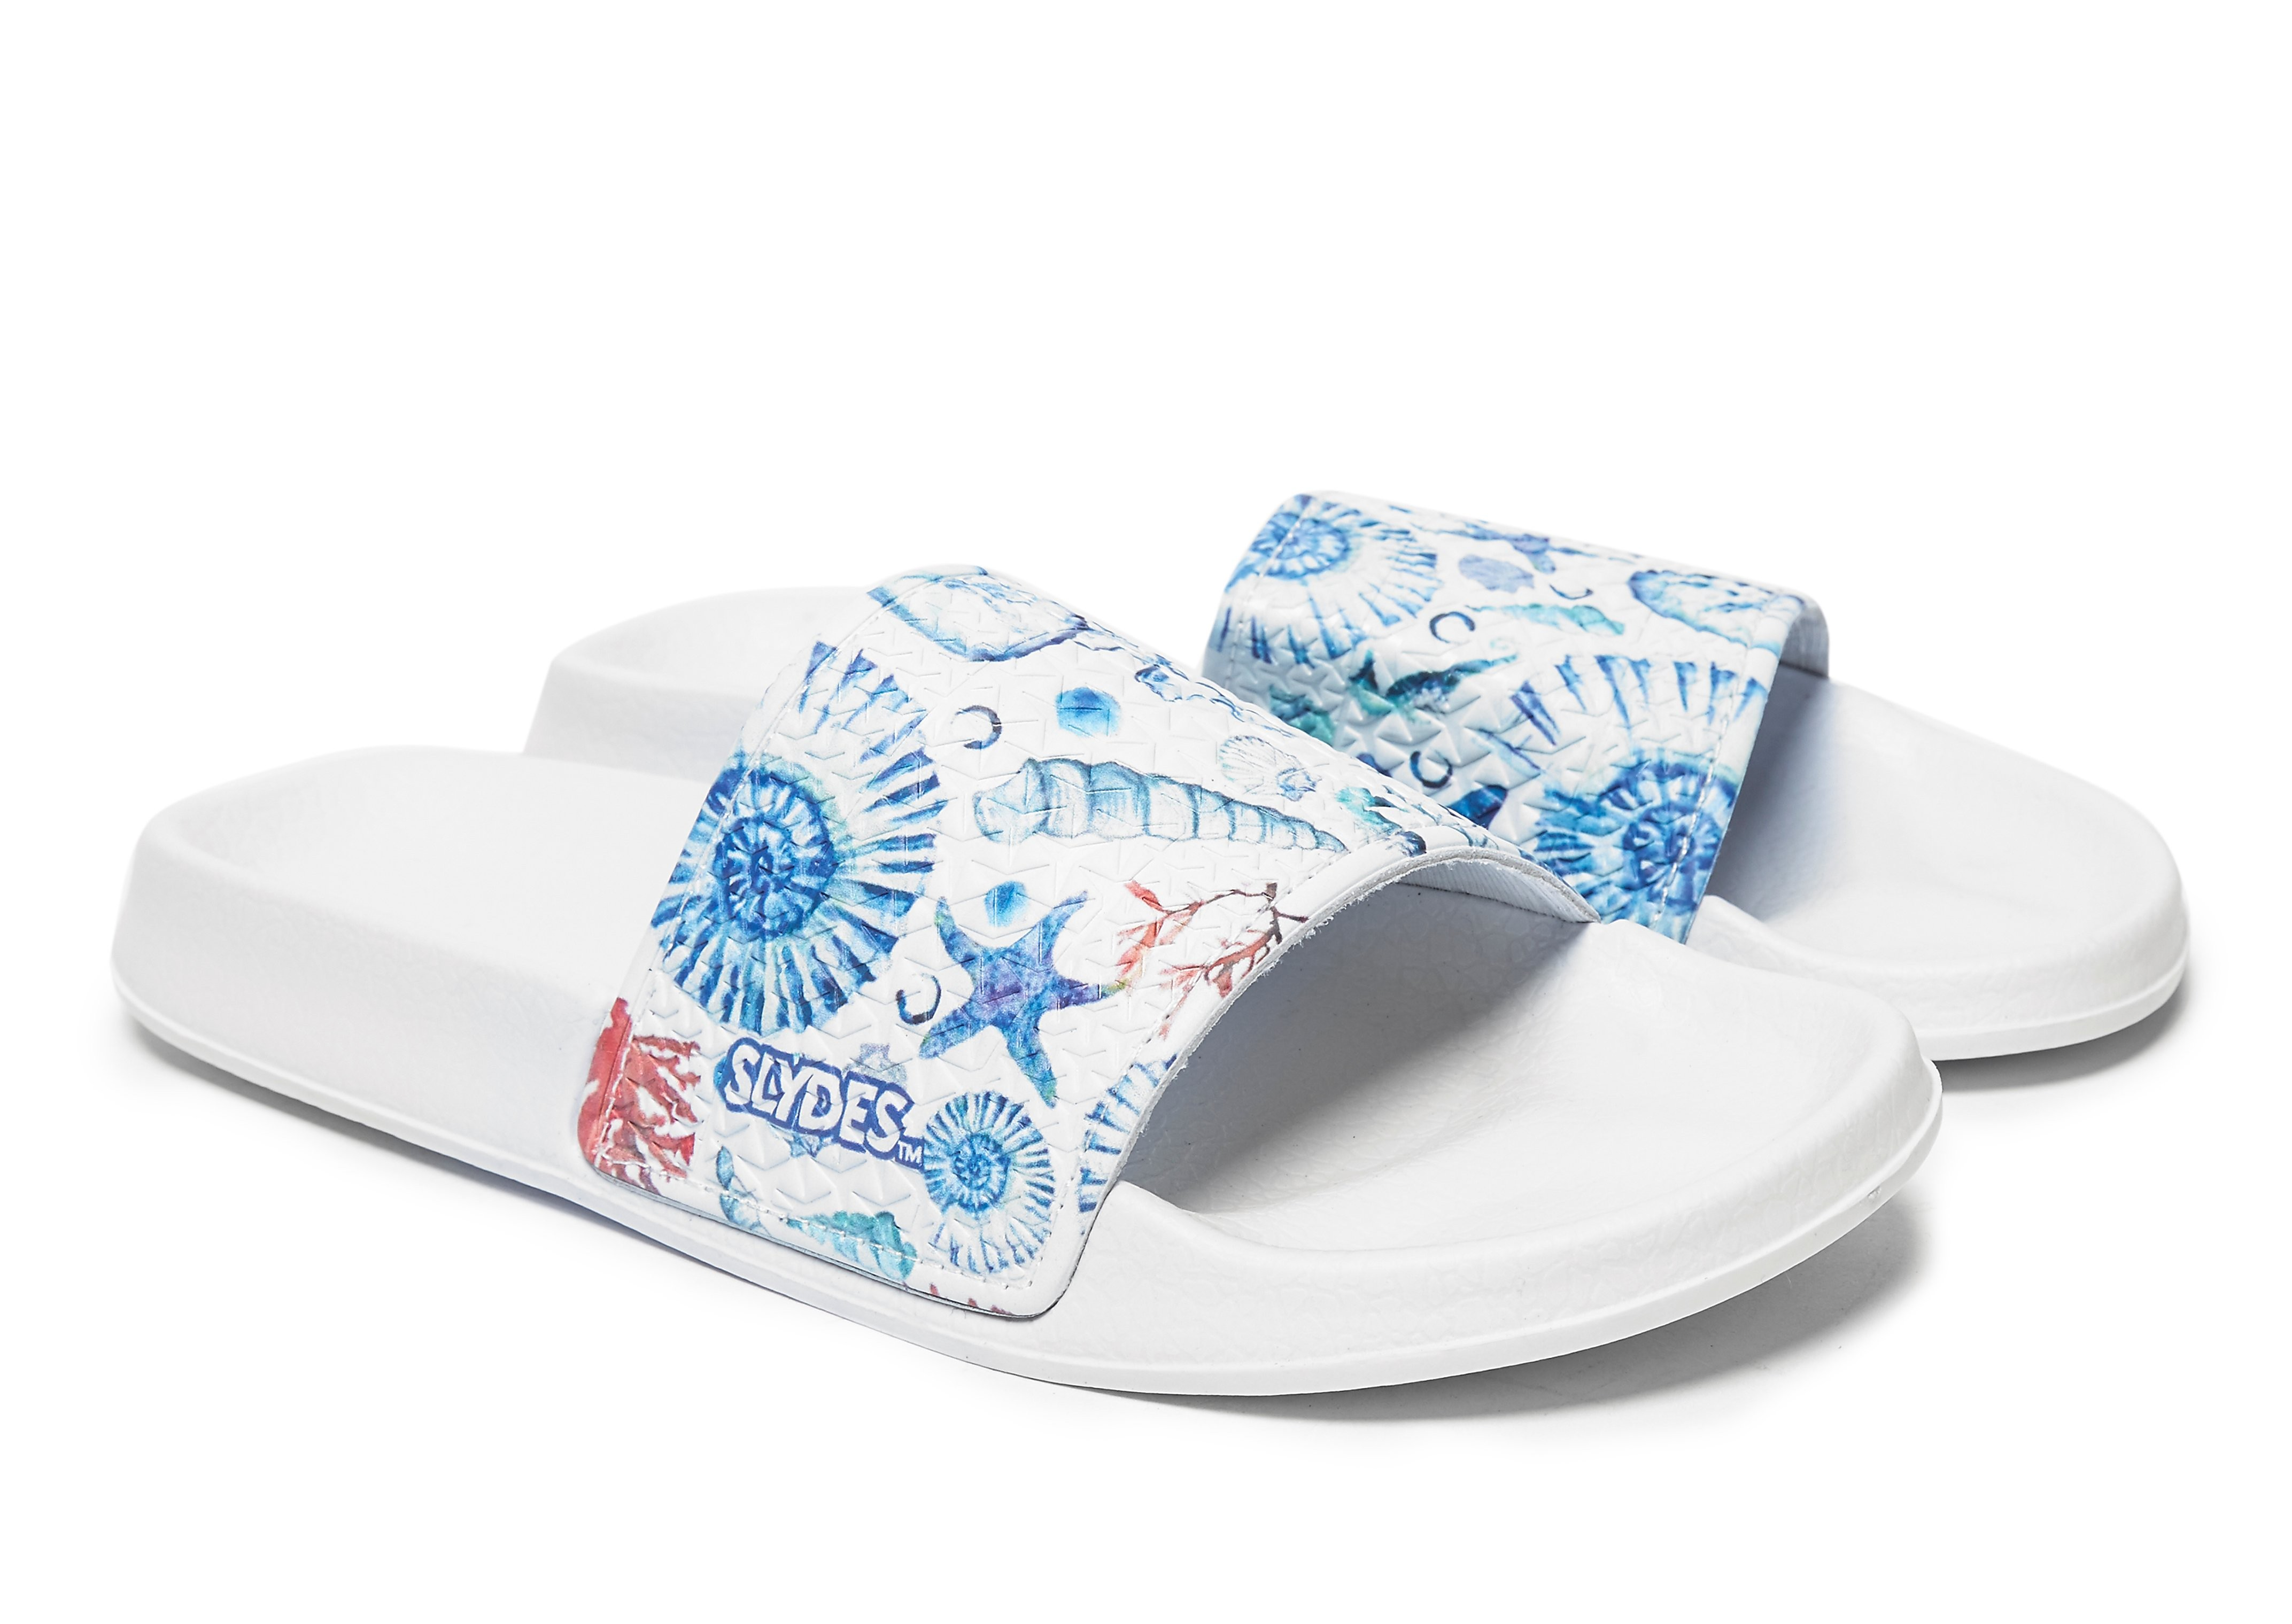 Slydes Sea Life Slides Women's